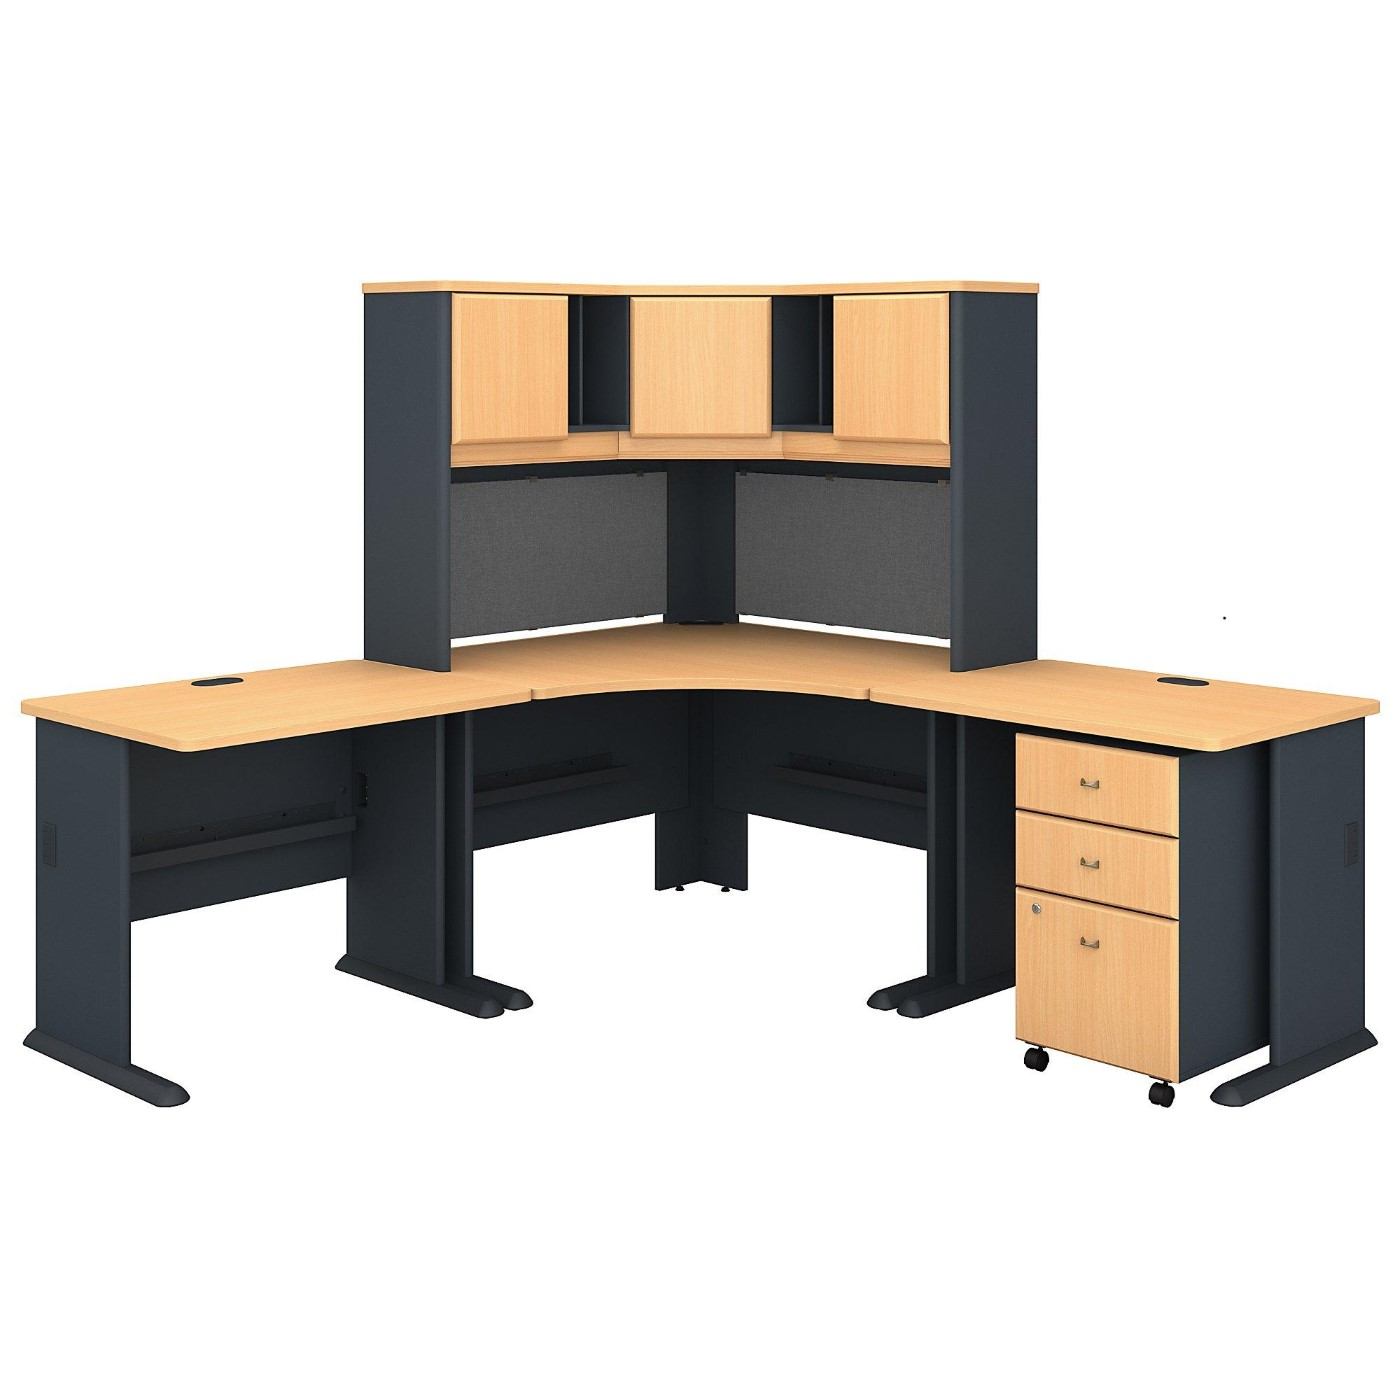 BUSH BUSINESS FURNITURE SERIES A 84W X 84D CORNER DESK WITH HUTCH AND MOBILE FILE CABINET #EH-SRA061BESU. SUSTAINABLE FURNITURE. FREE SHIPPING